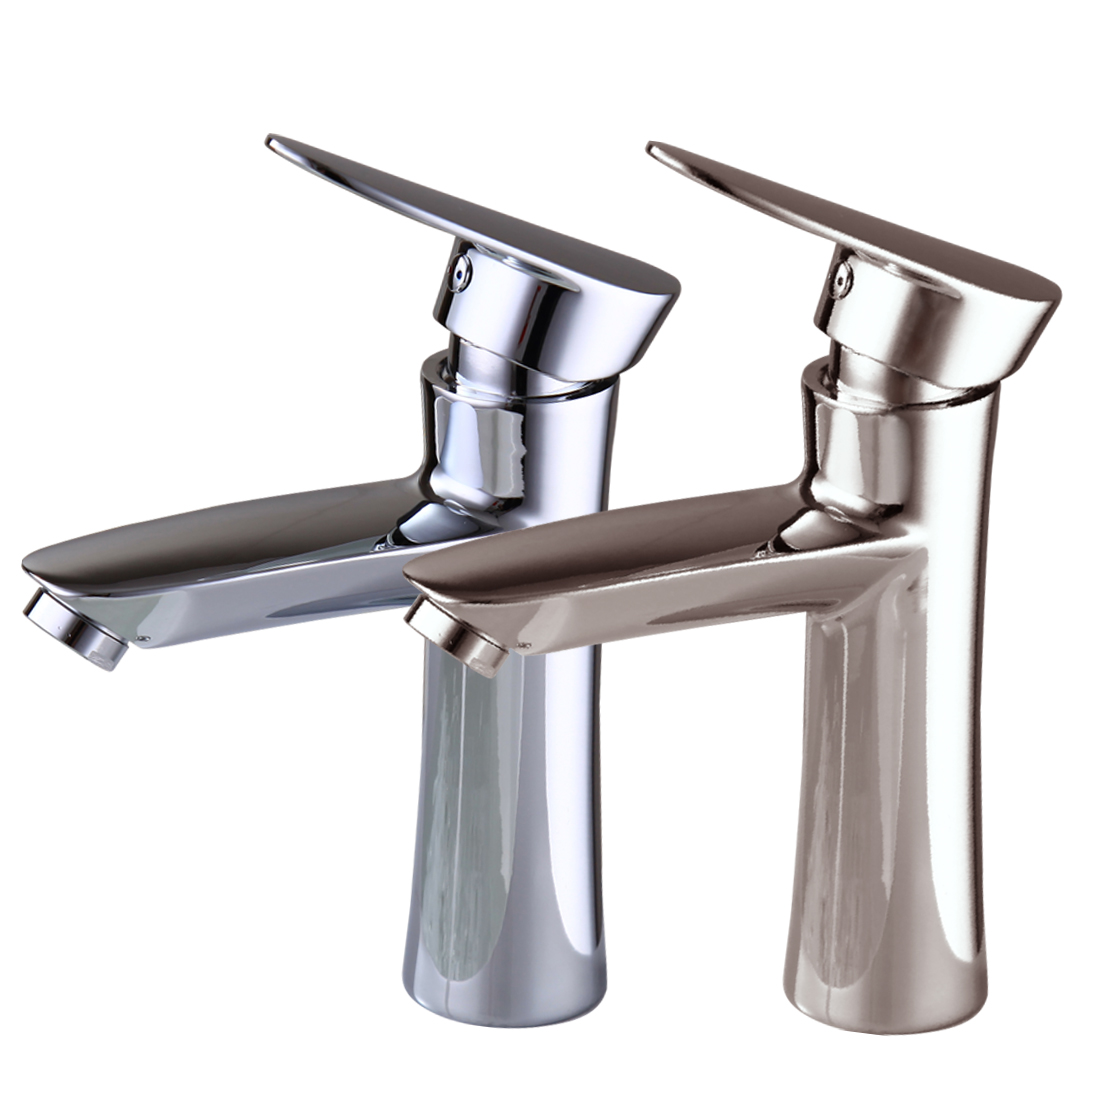 Oil rubbed bronze modern bathroom faucet widespread sink for Plumbing bathroom sink